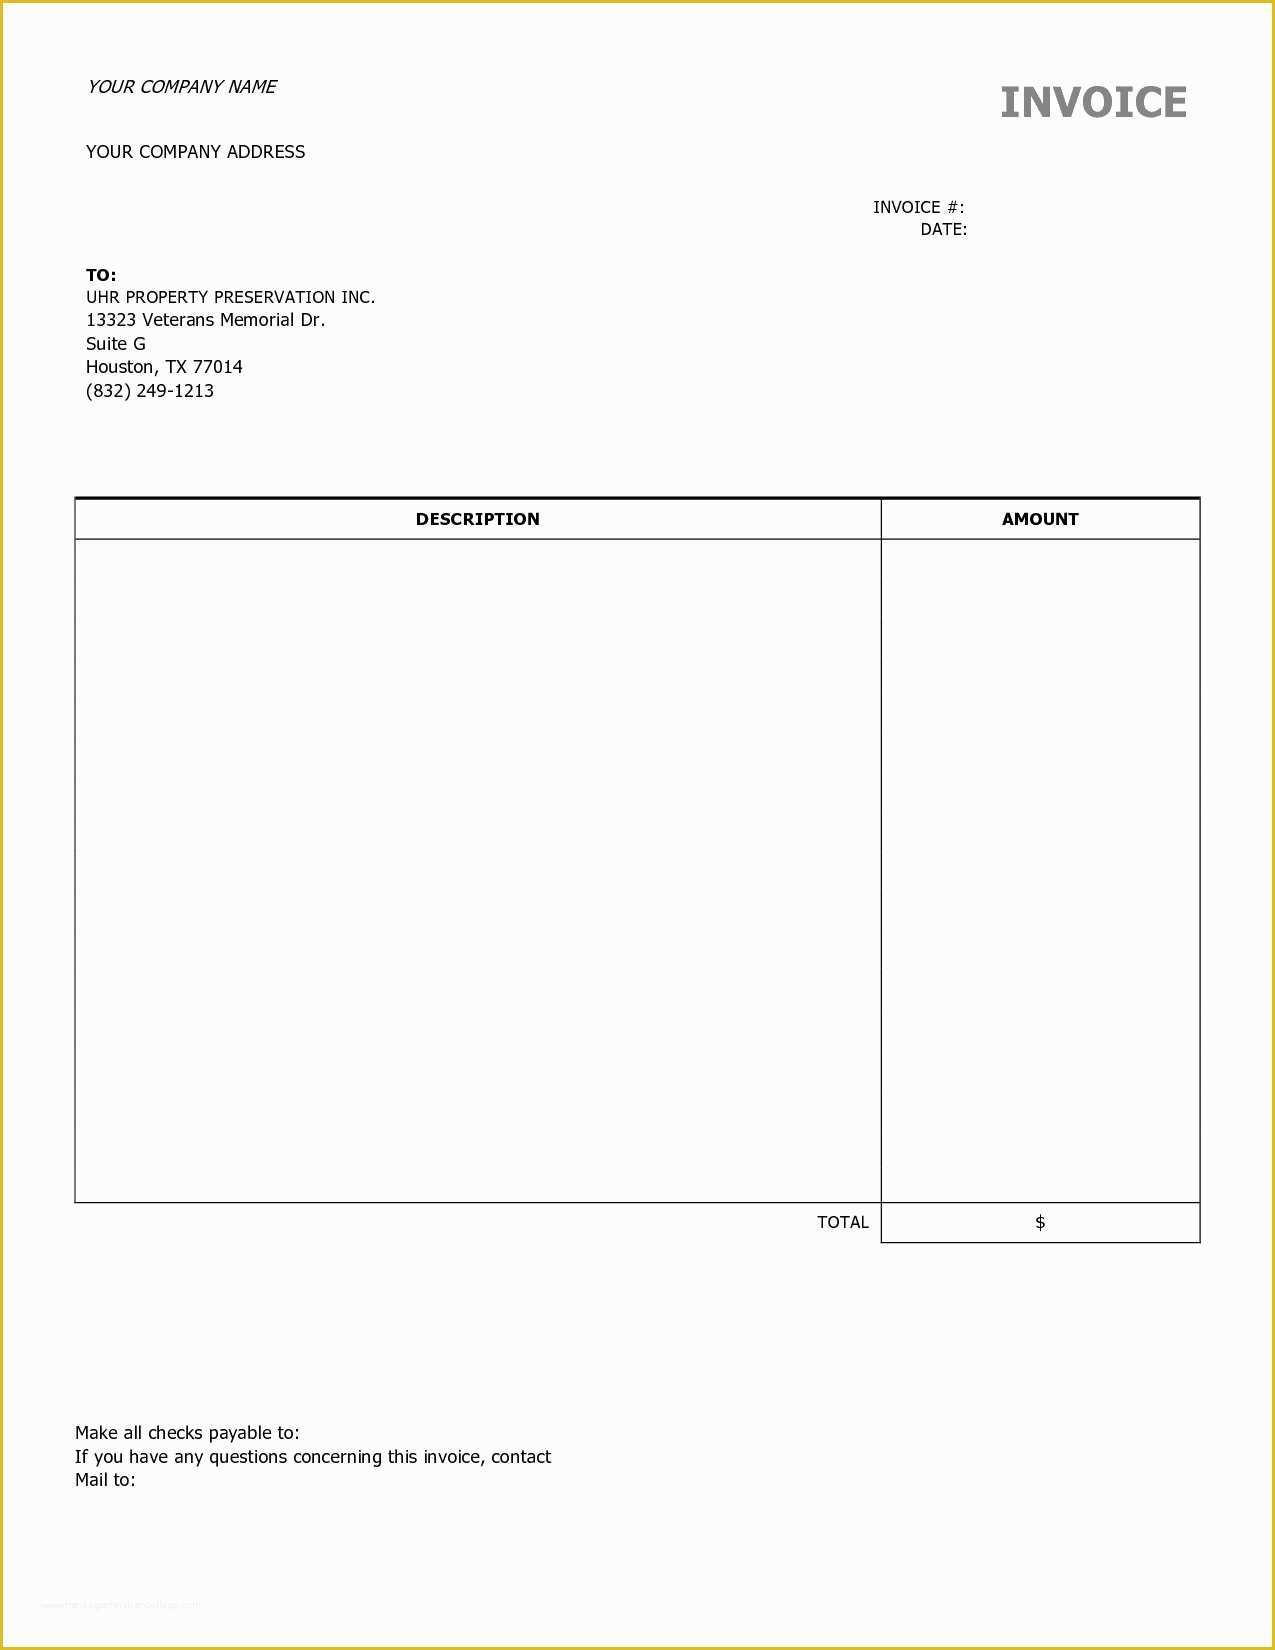 Free Printable Construction Invoice Template Of Blank Contractor Invoice Invoice Template Ideas